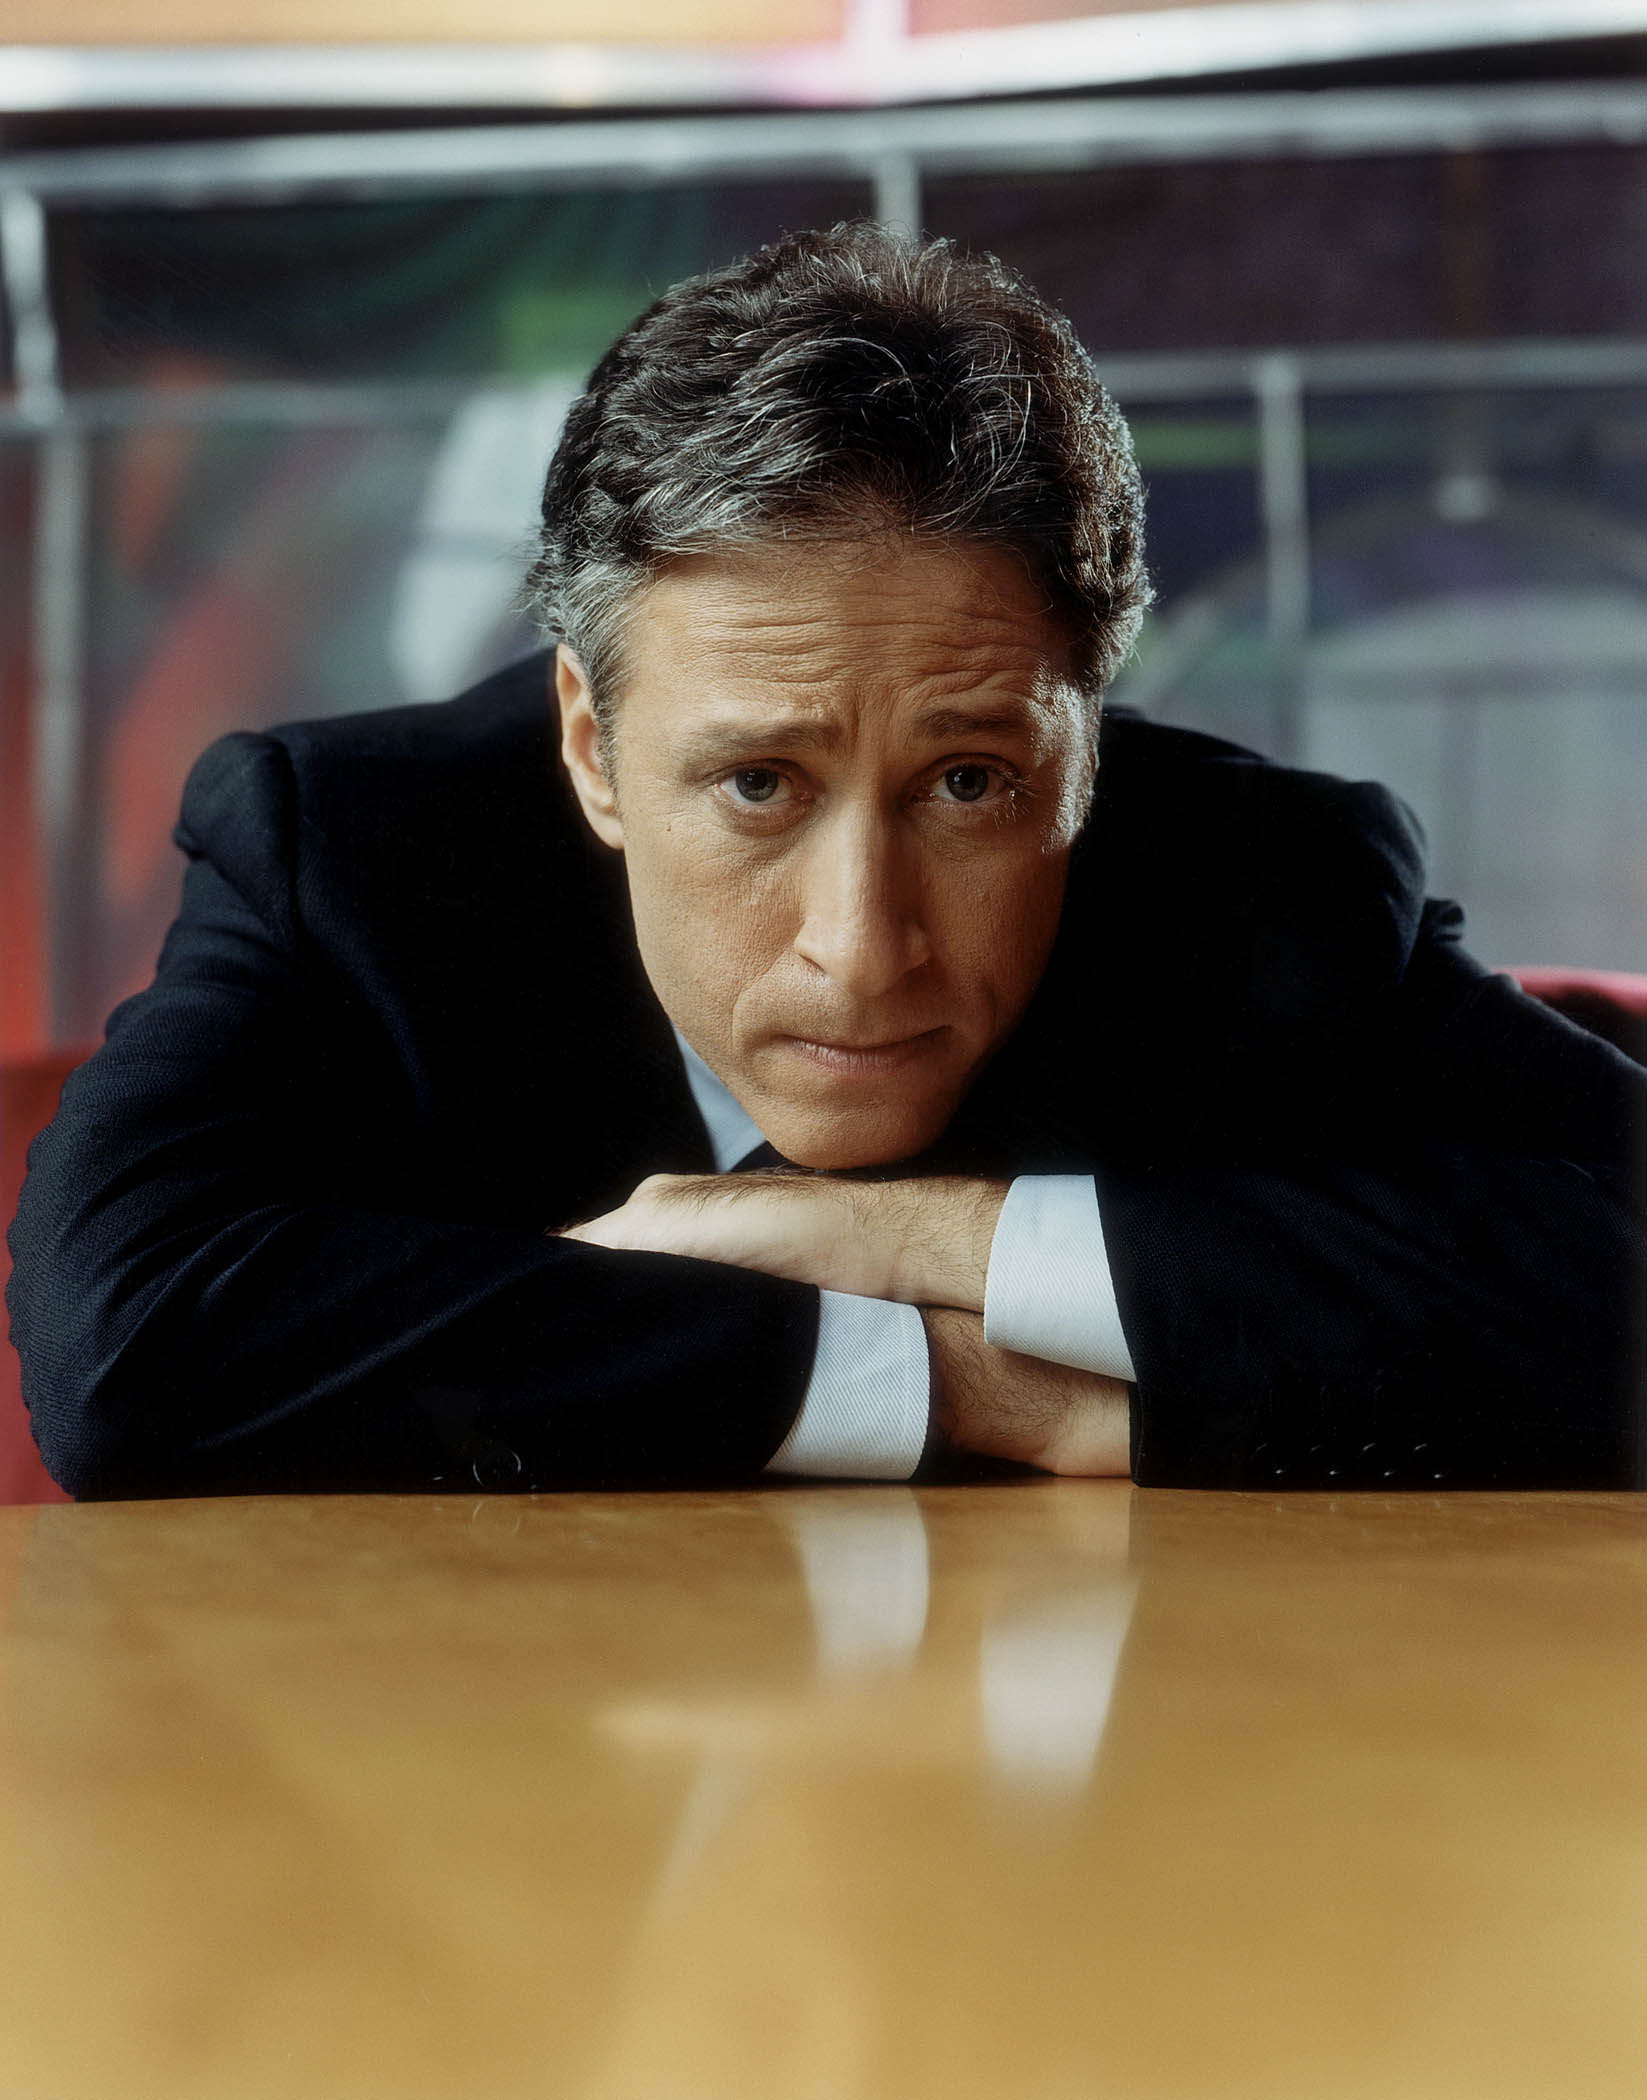 Jon Stewart wants to you to help autistic children | Psychology Today